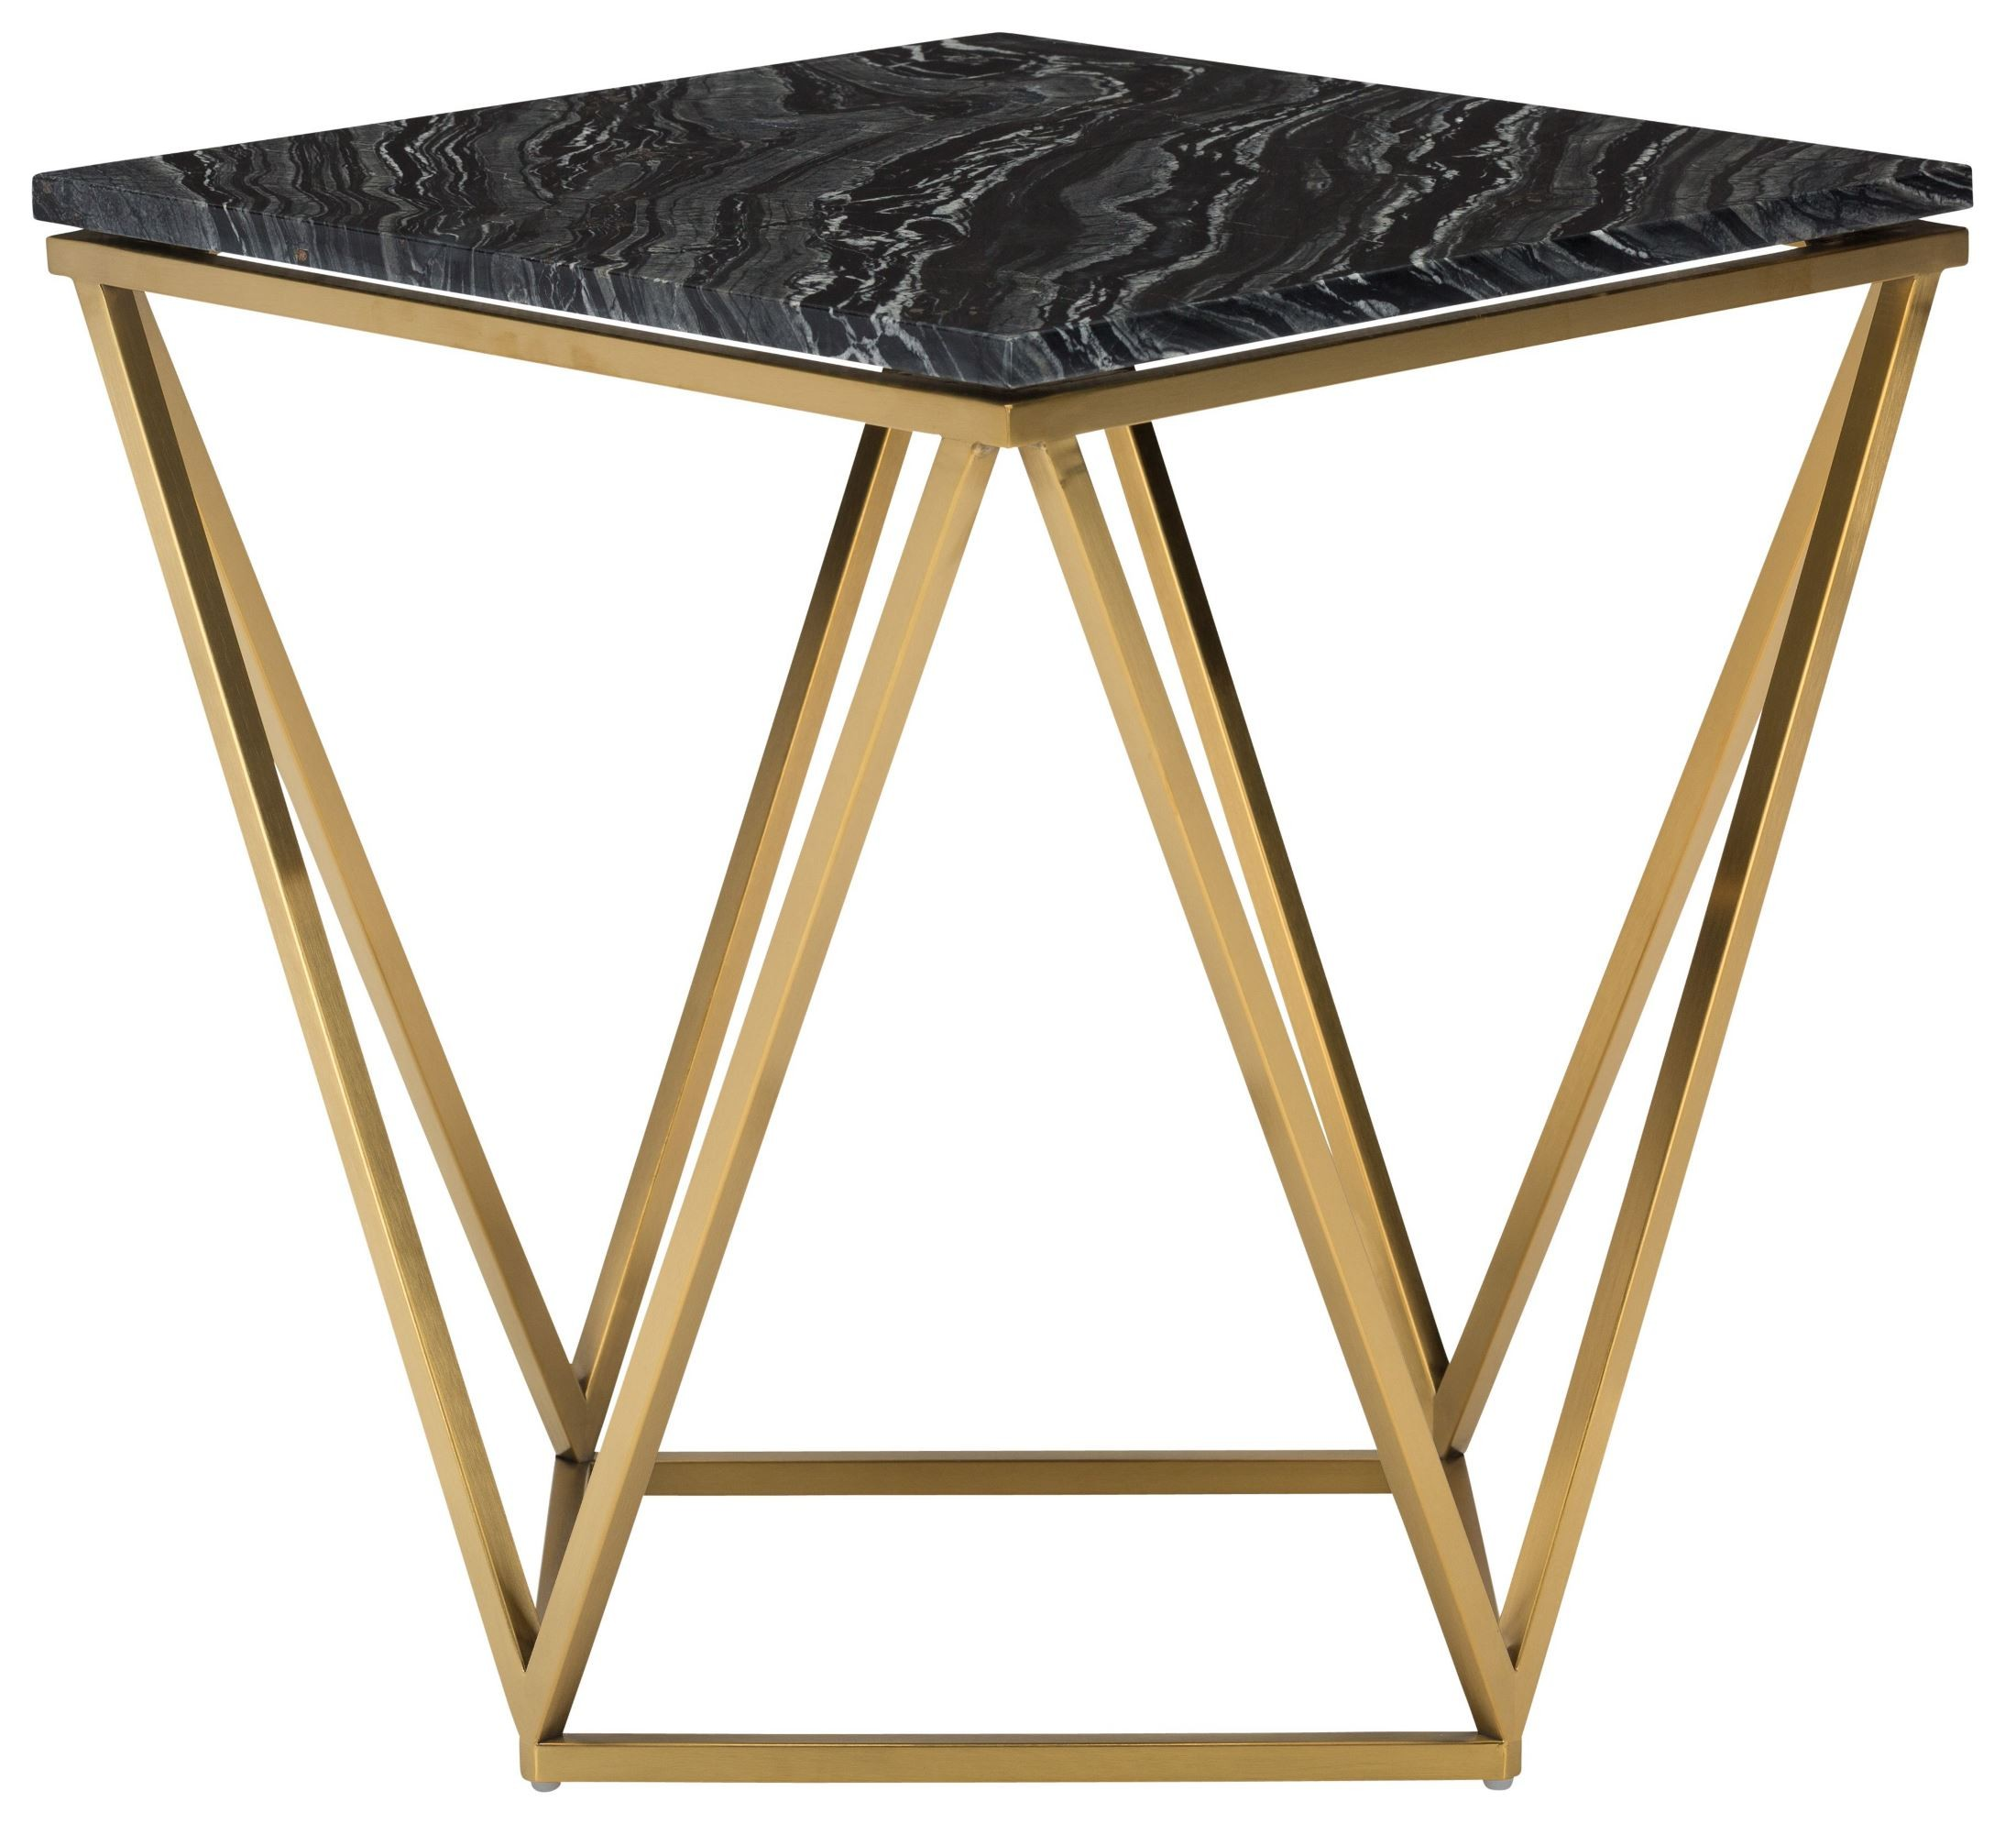 Nuevo Aurora Gold Coffee Table: Jasmine Black Stone And Gold Metal Side Table From Nuevo